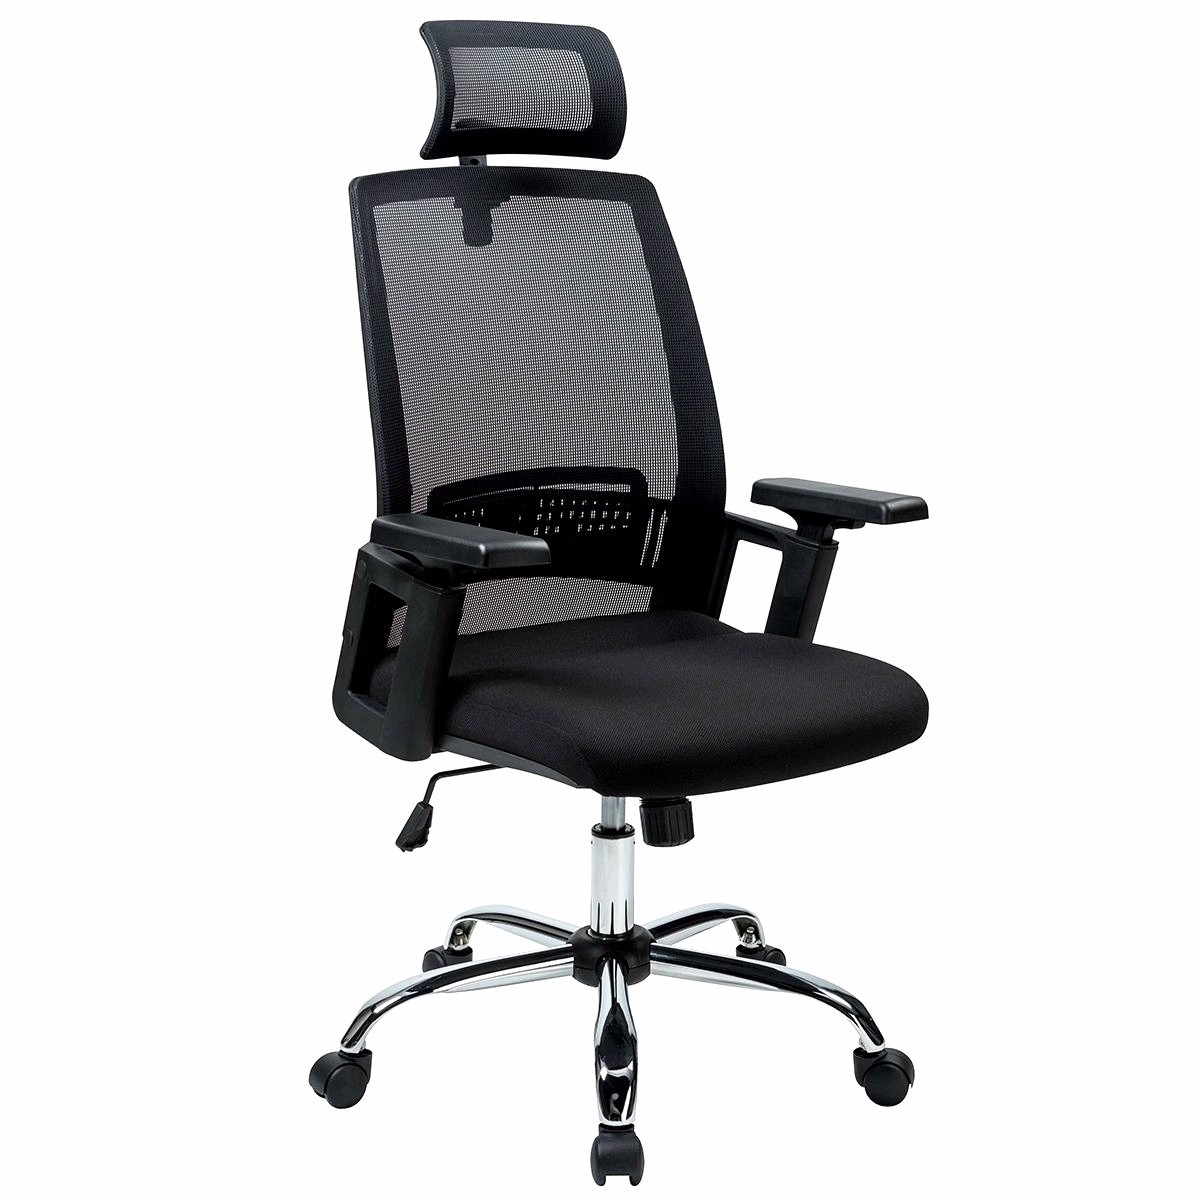 Sillas Para Pc Sillas De Escritorio Ergonomicas Perfect Silla Oficina